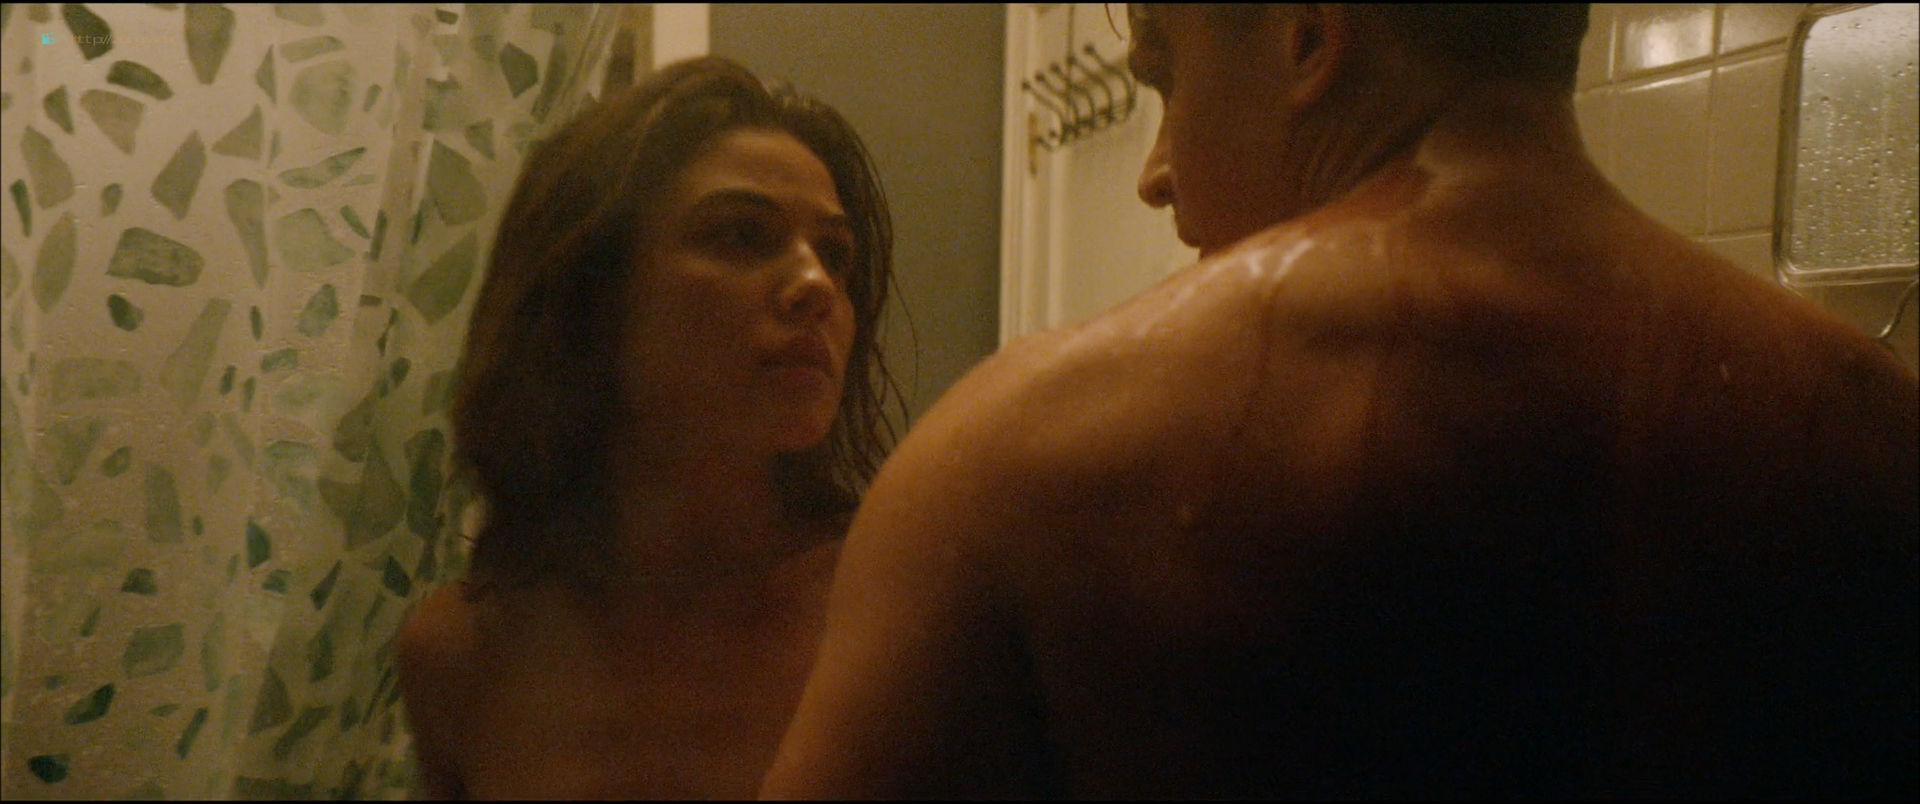 Danielle Campbell hot sexy Paulina Singer hot - Tell Me a Story (2018) s1e-1-5 HD 1080p (4)